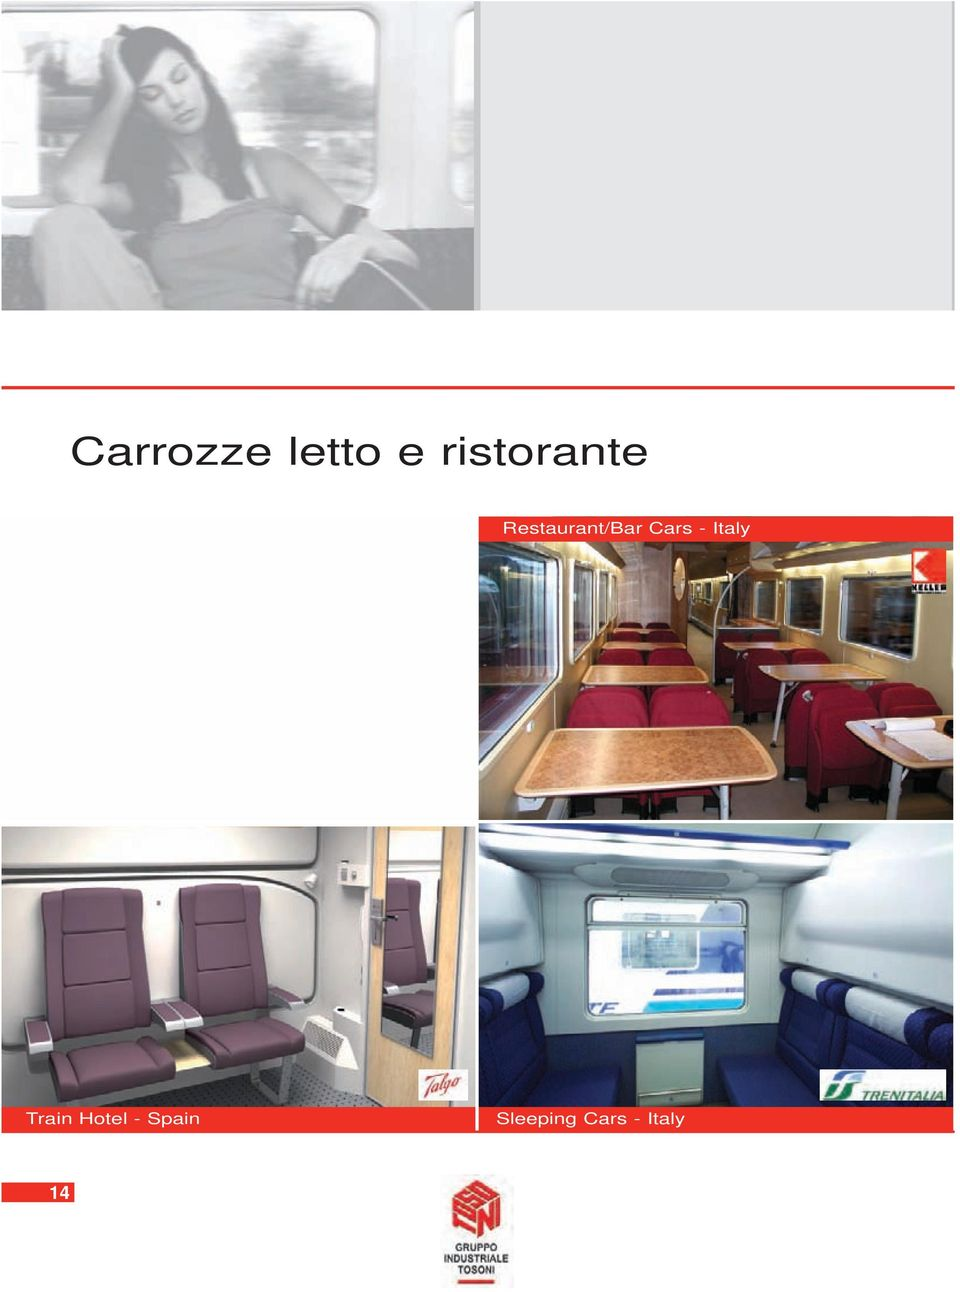 Restaurant/Bar Cars -